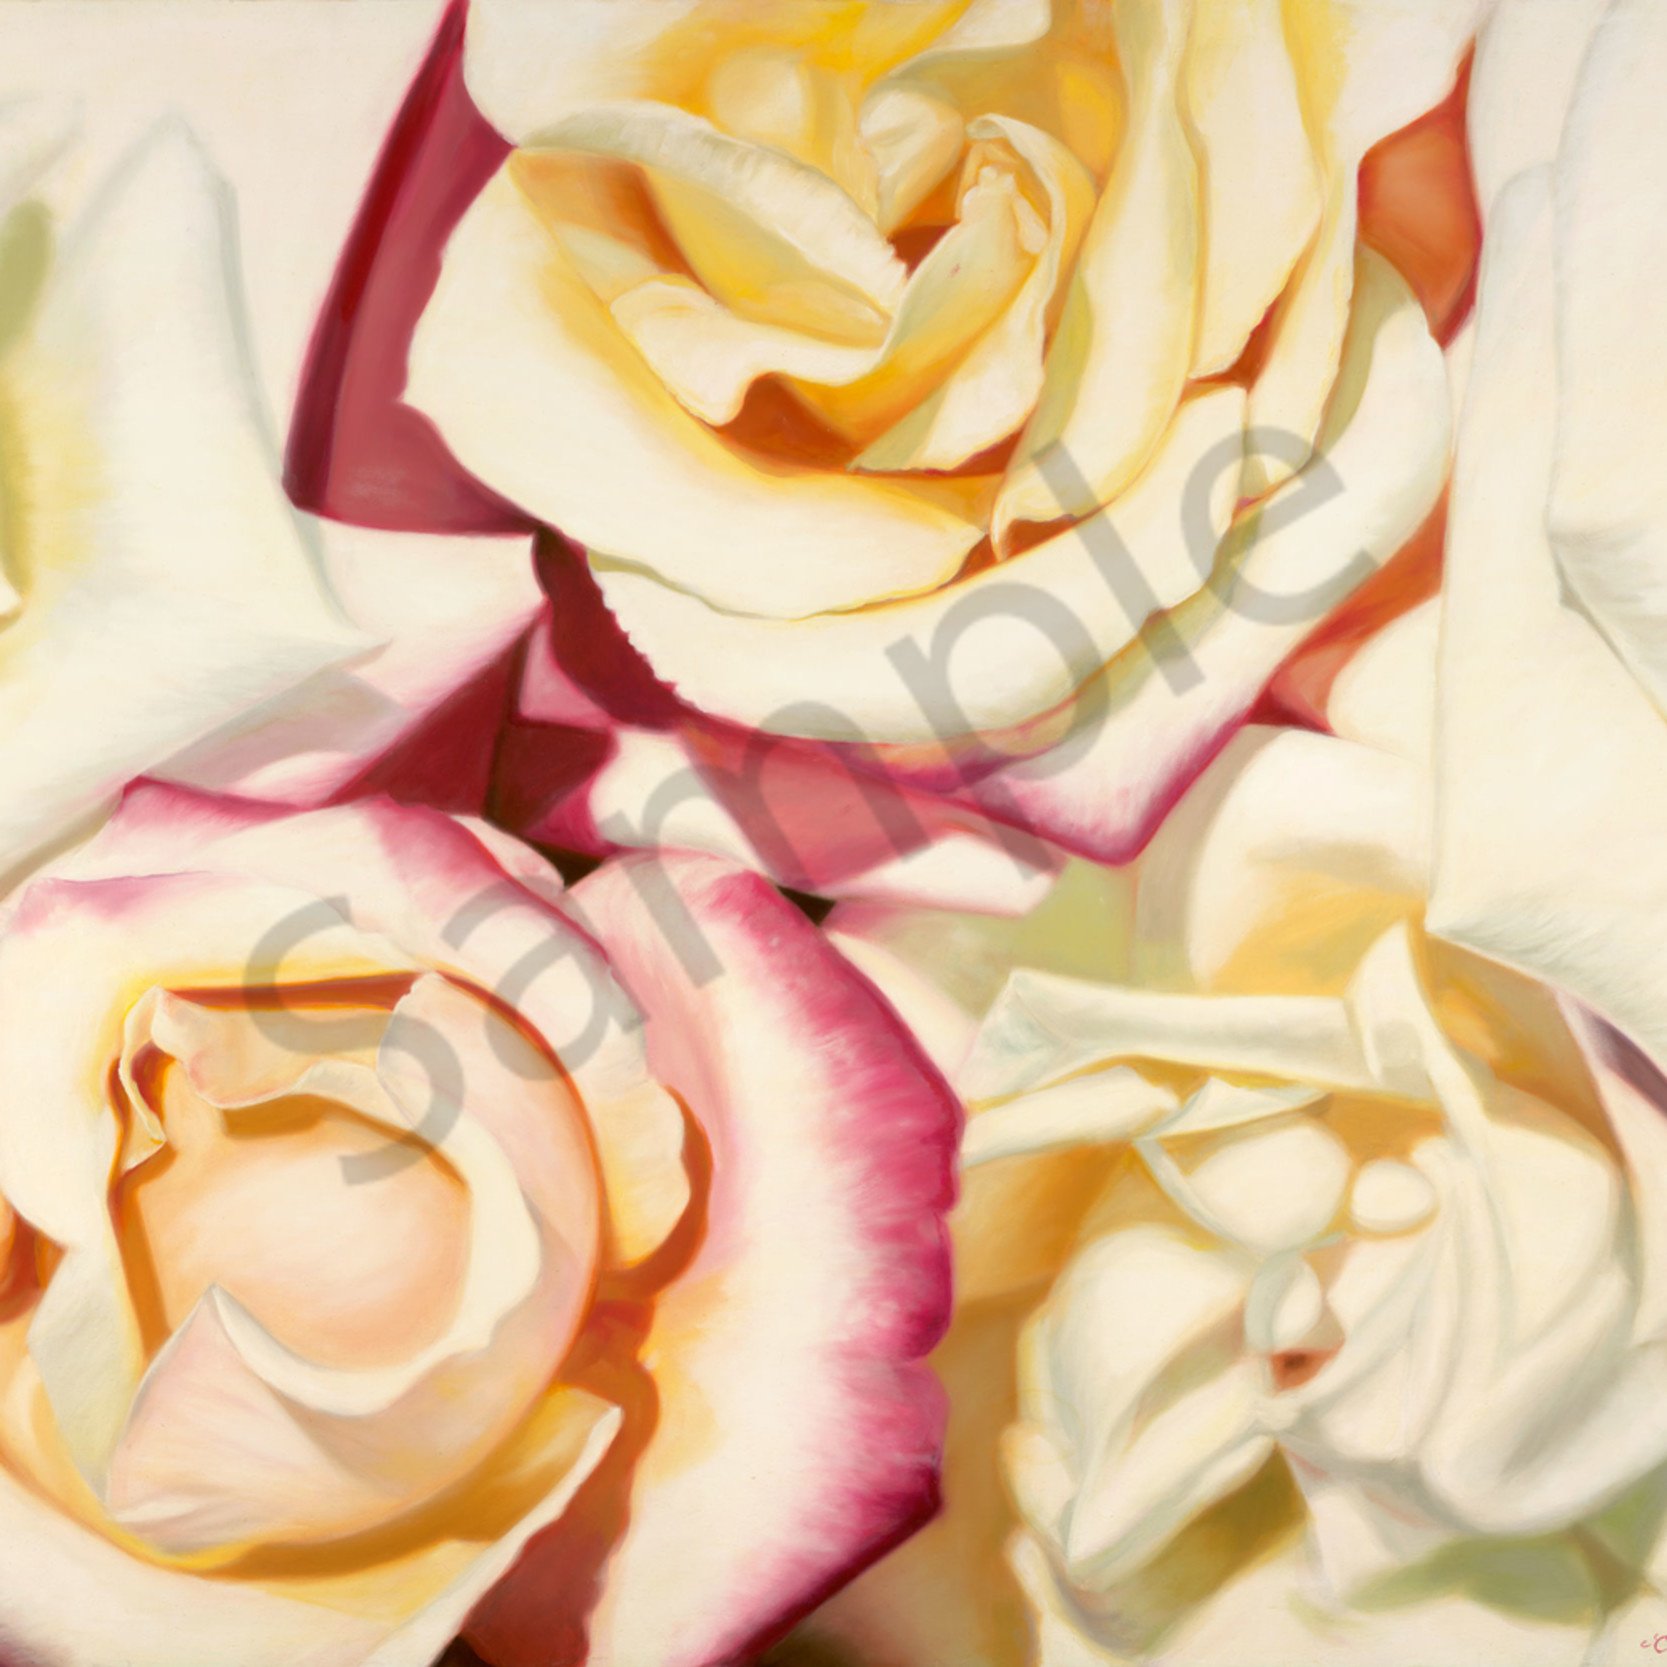 Clew 007 floral roses 100x120cm orig dvowtc